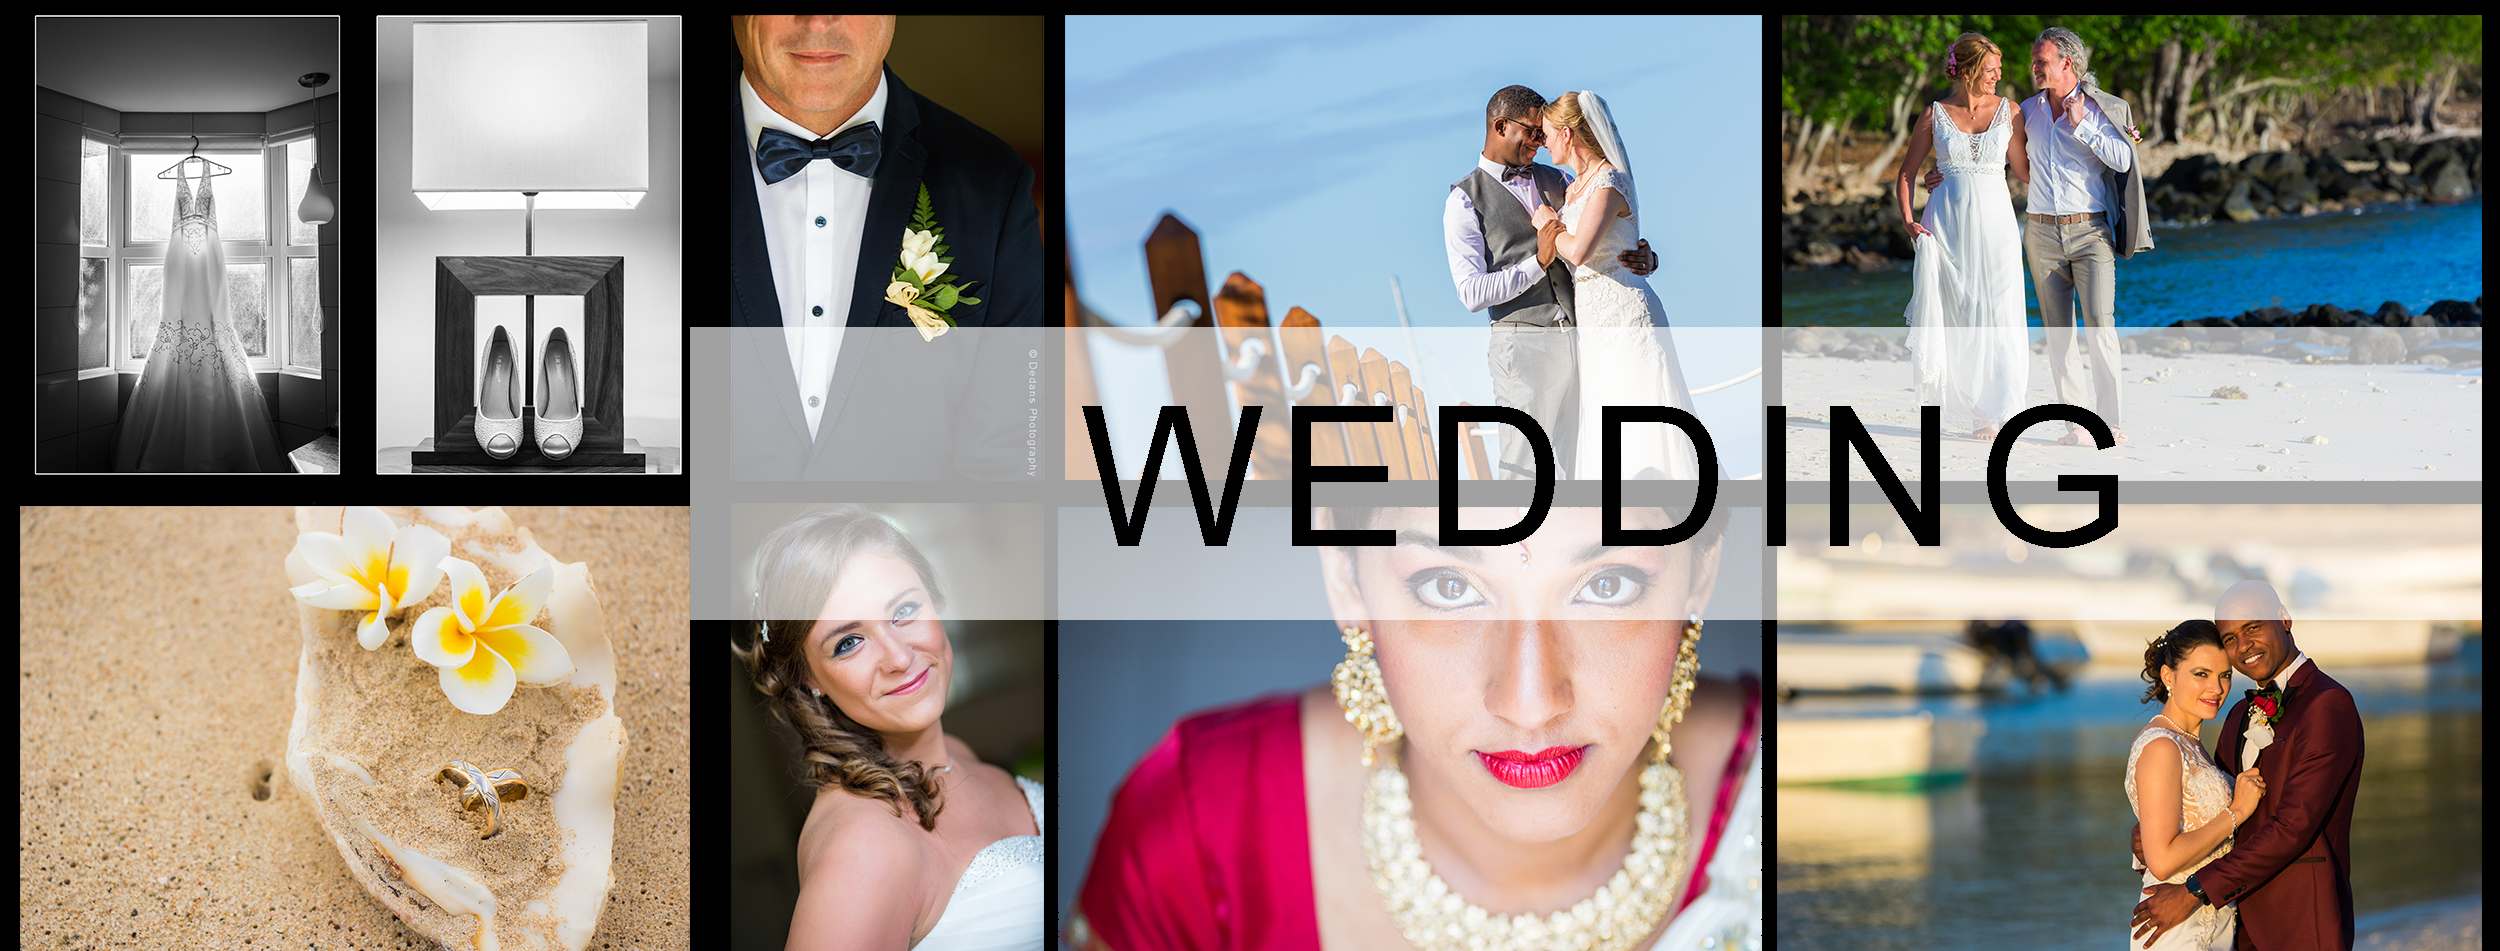 Collage of wedding photos captured by Dedans Photography.